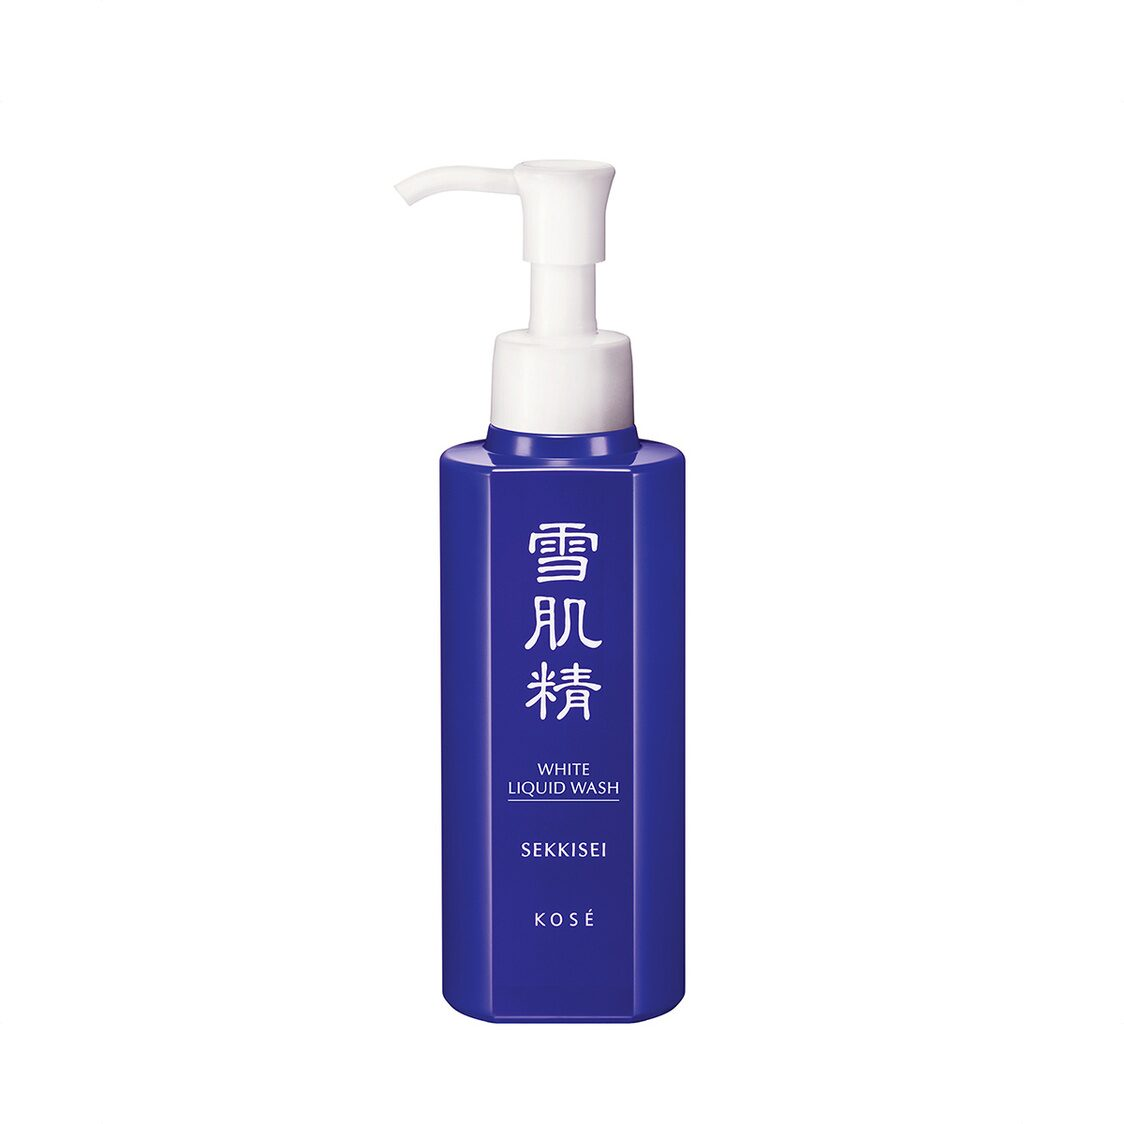 Sekkisei Liquid Wash 140ml